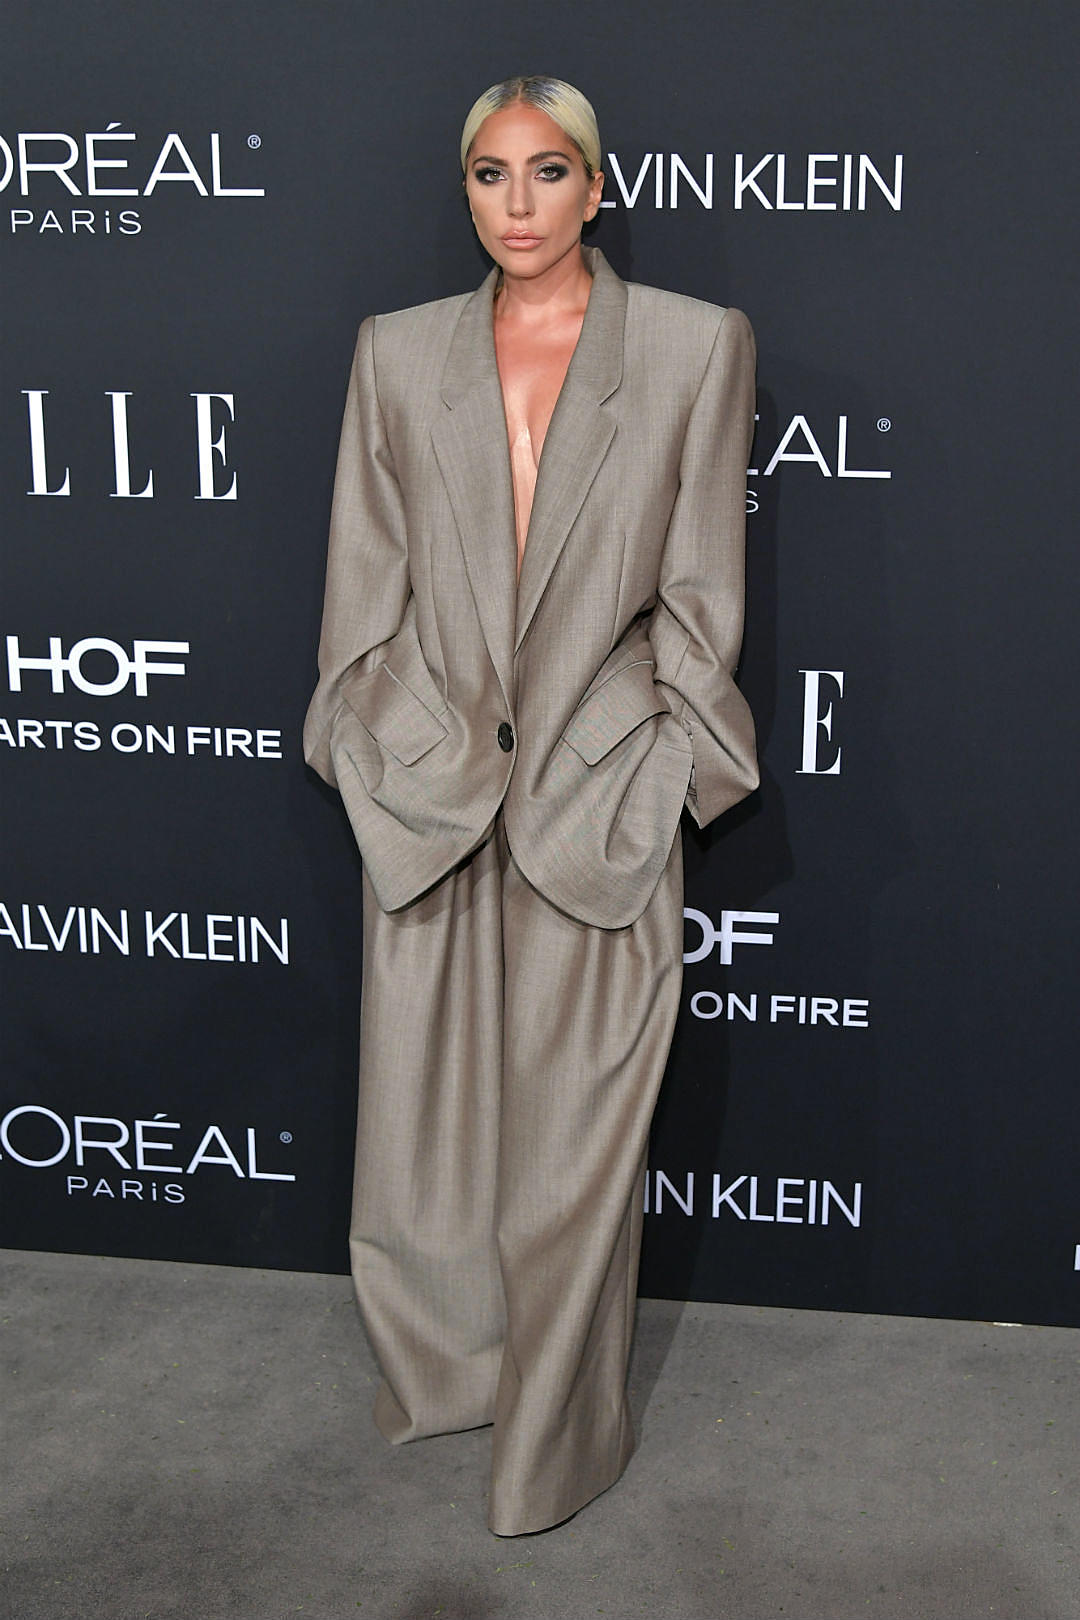 Lady Gaga Explains Why She Wore Huge Baggy Suit To Elle Event